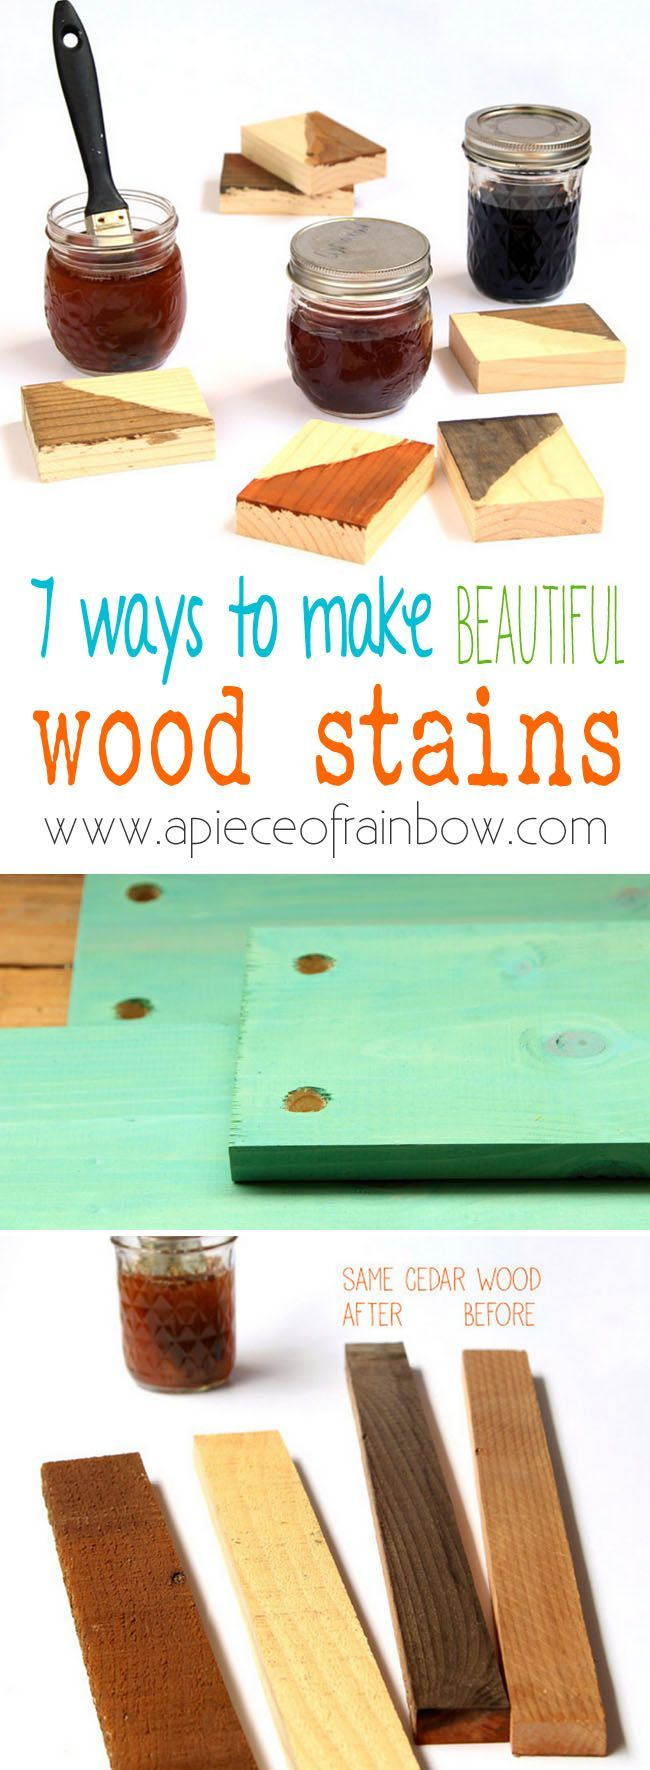 make wood stain 7 ways how to and diy bois teinture bois bricolage bois. Black Bedroom Furniture Sets. Home Design Ideas